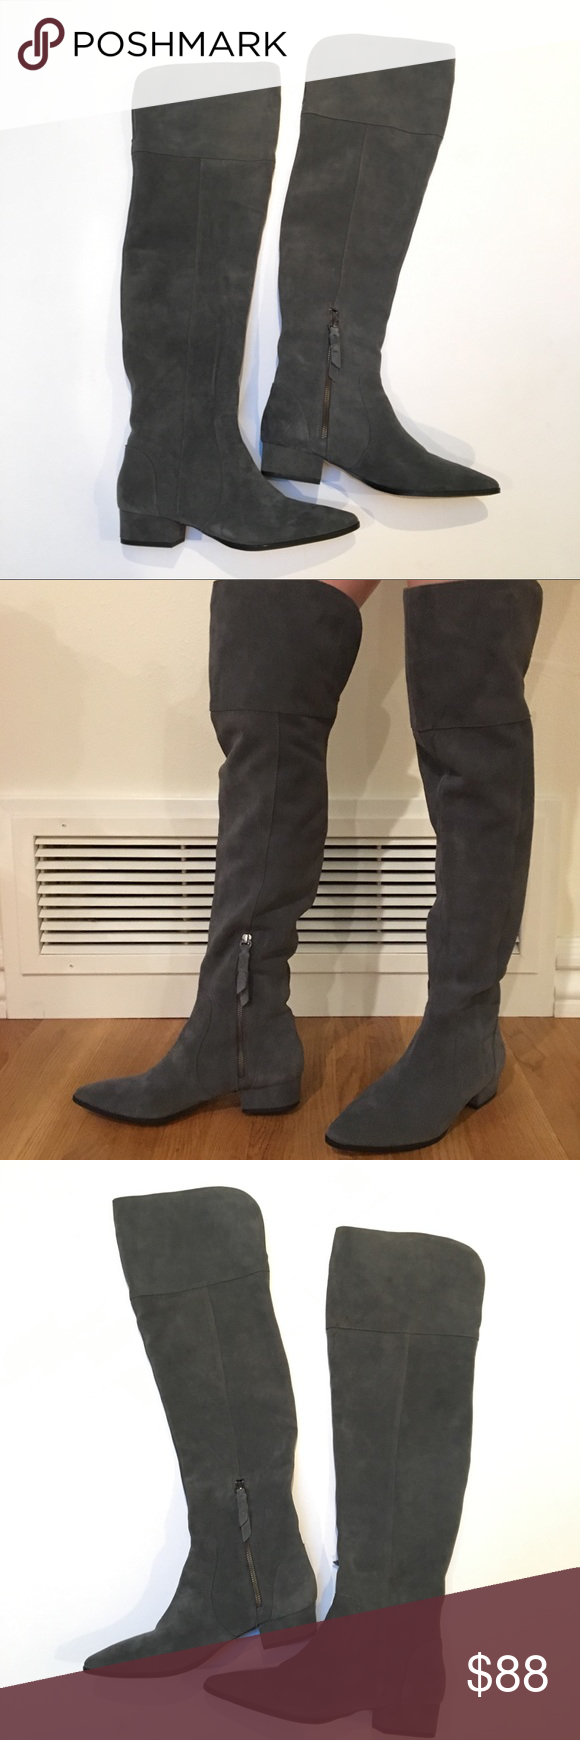 4171fab704c Splendid Ruby Over The Knee Gray Suede Boots 9 Splendid Ruby Over The Knee  OTK Gray Suede Pointed Boots Size 9 Overall excellent condition- most of ...